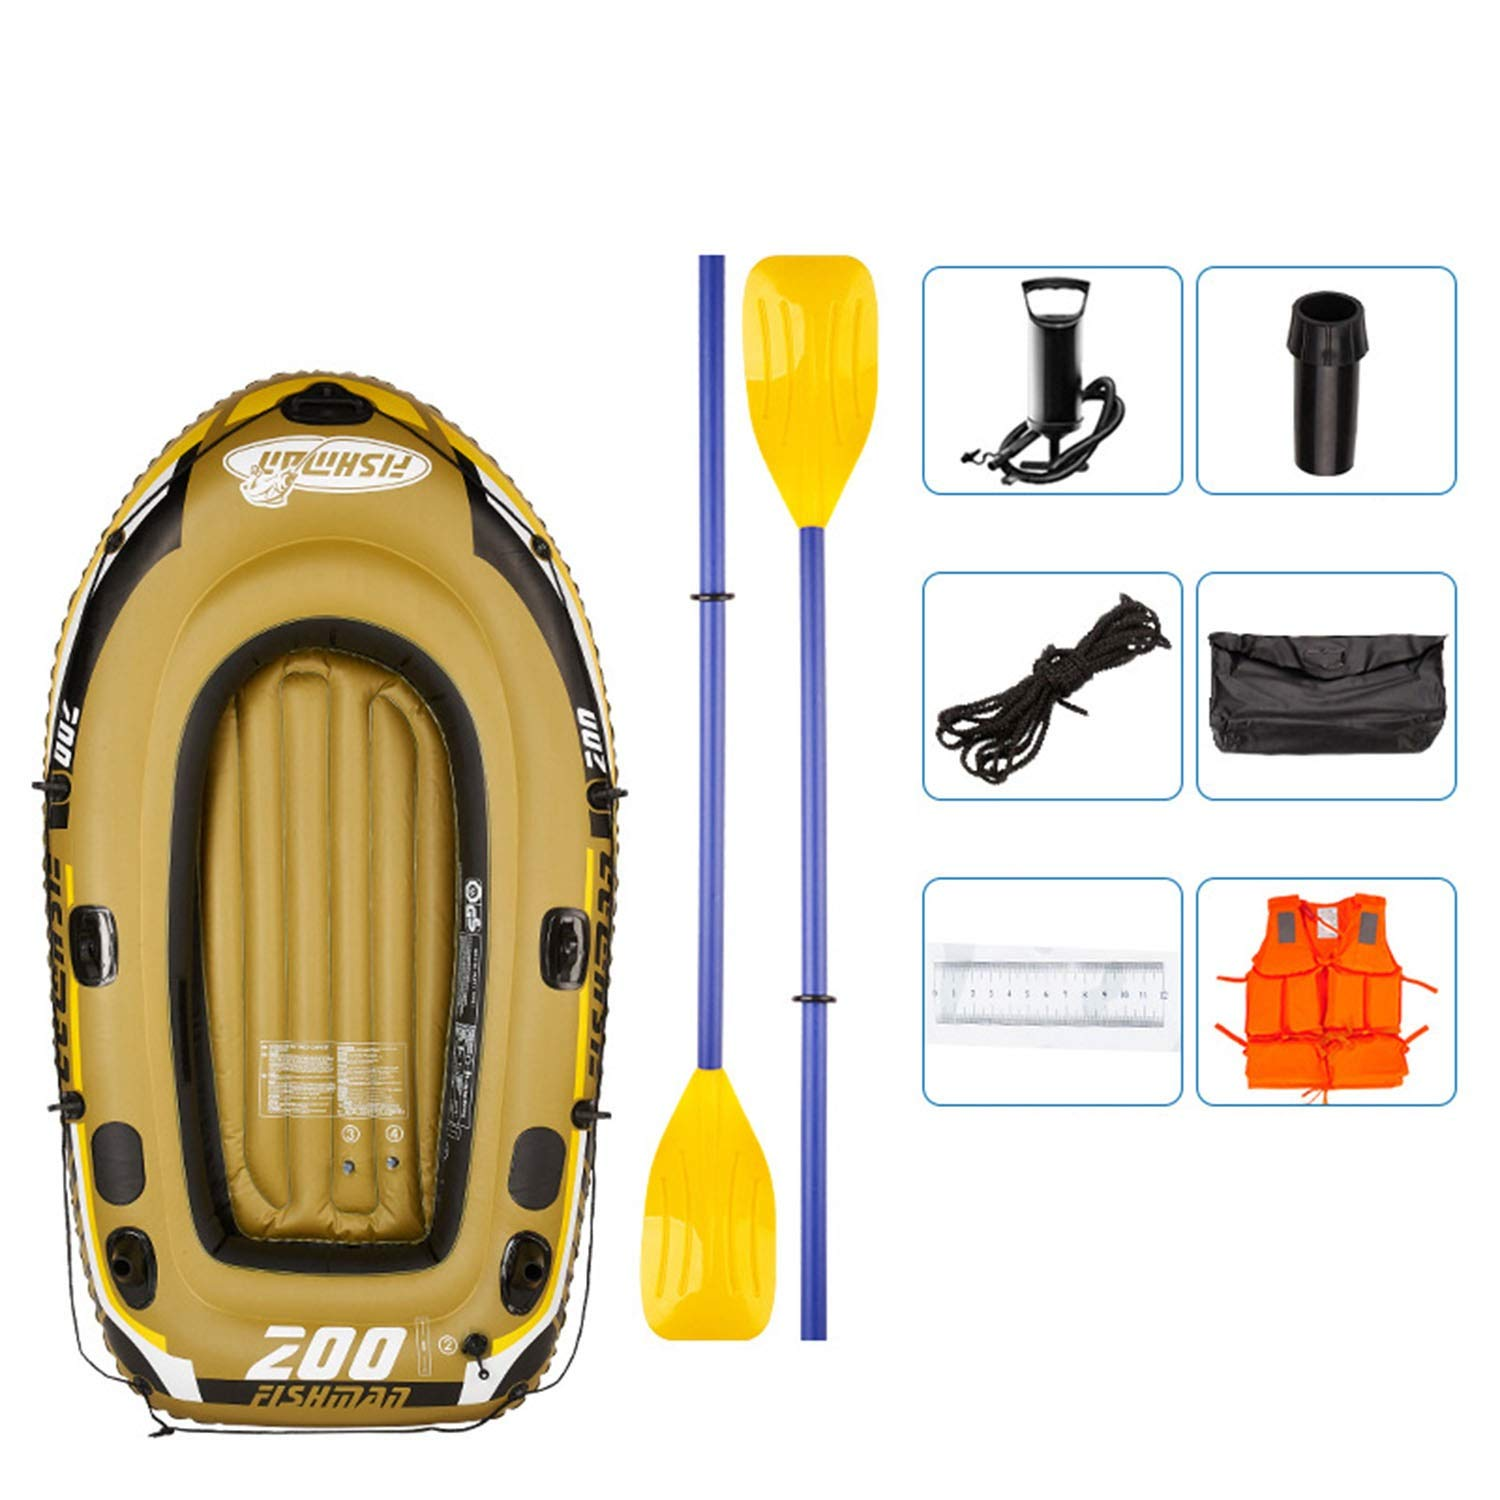 Inflatable Rubber Boat, River Fishing Boat for 2 People, with 2 Aluminium Oars and Foot Pump, Max Load 300 kg